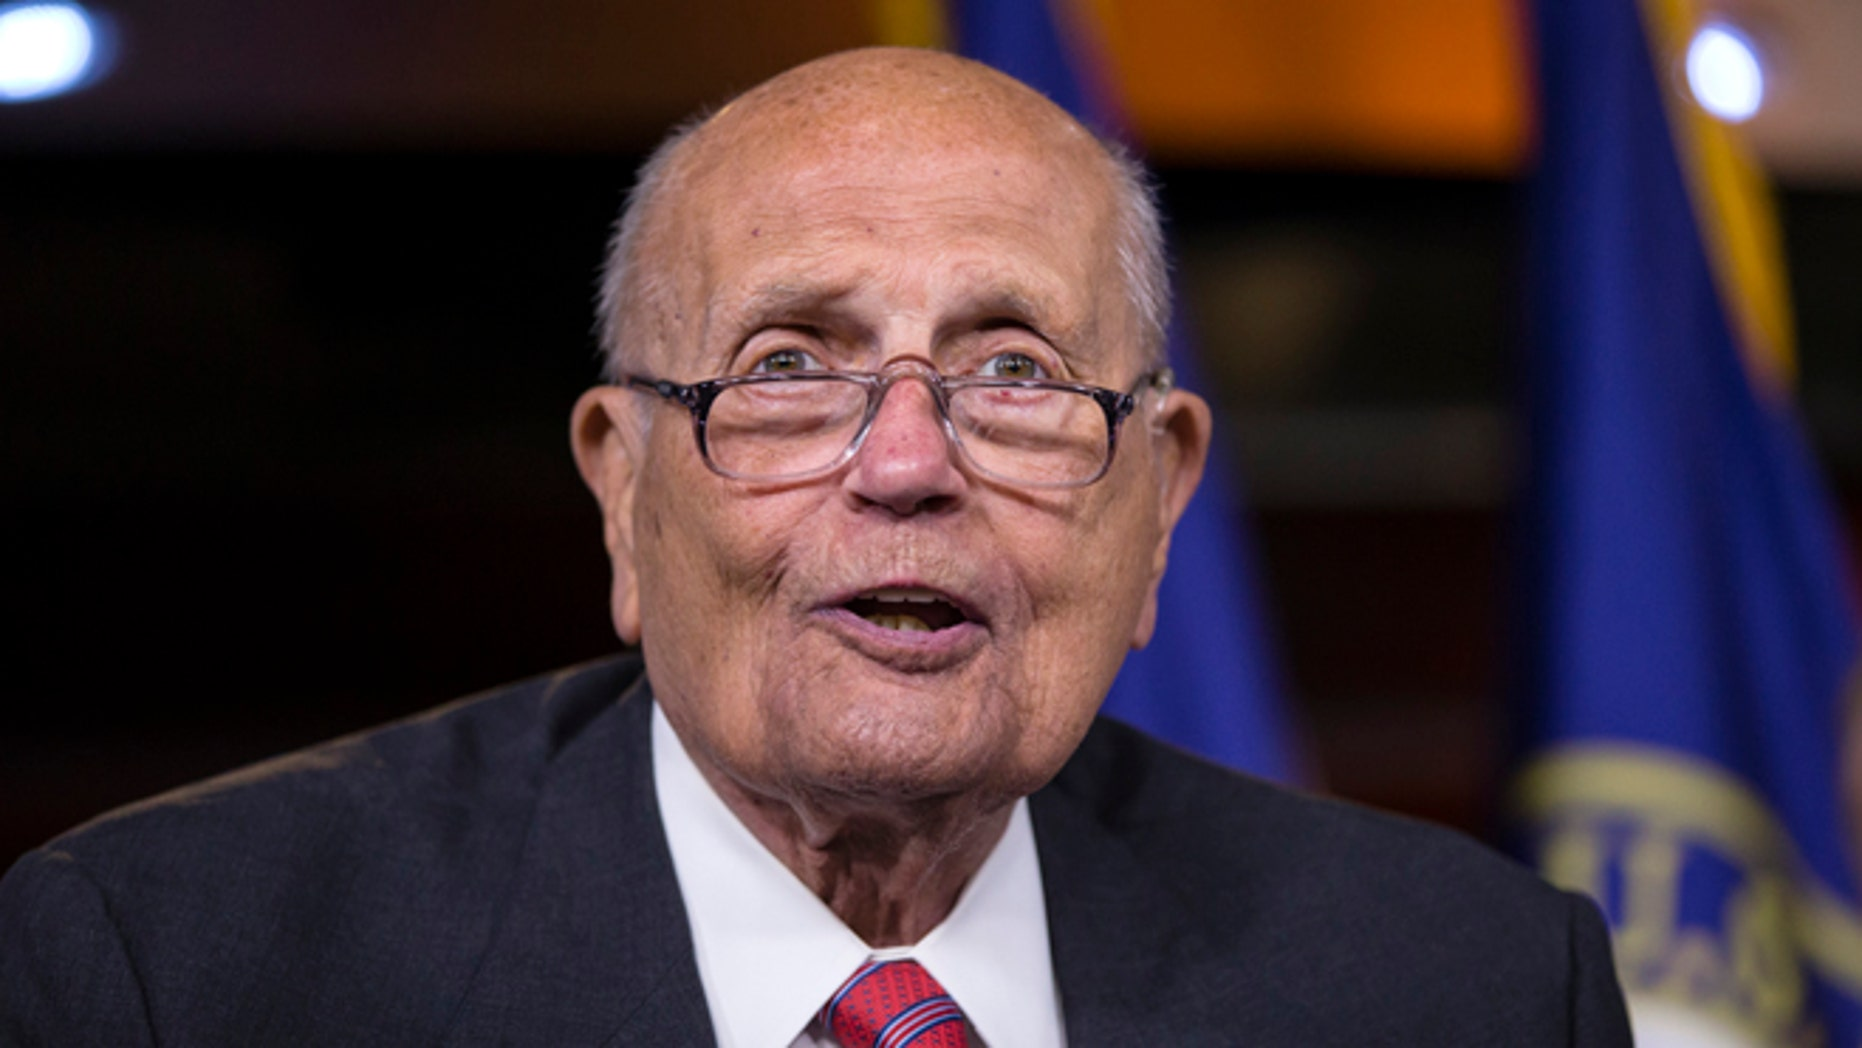 FILE: Oct. 4, 2013: Rep. John Dingell, D-Mich. on Capitol Hill in Washington, D.C.